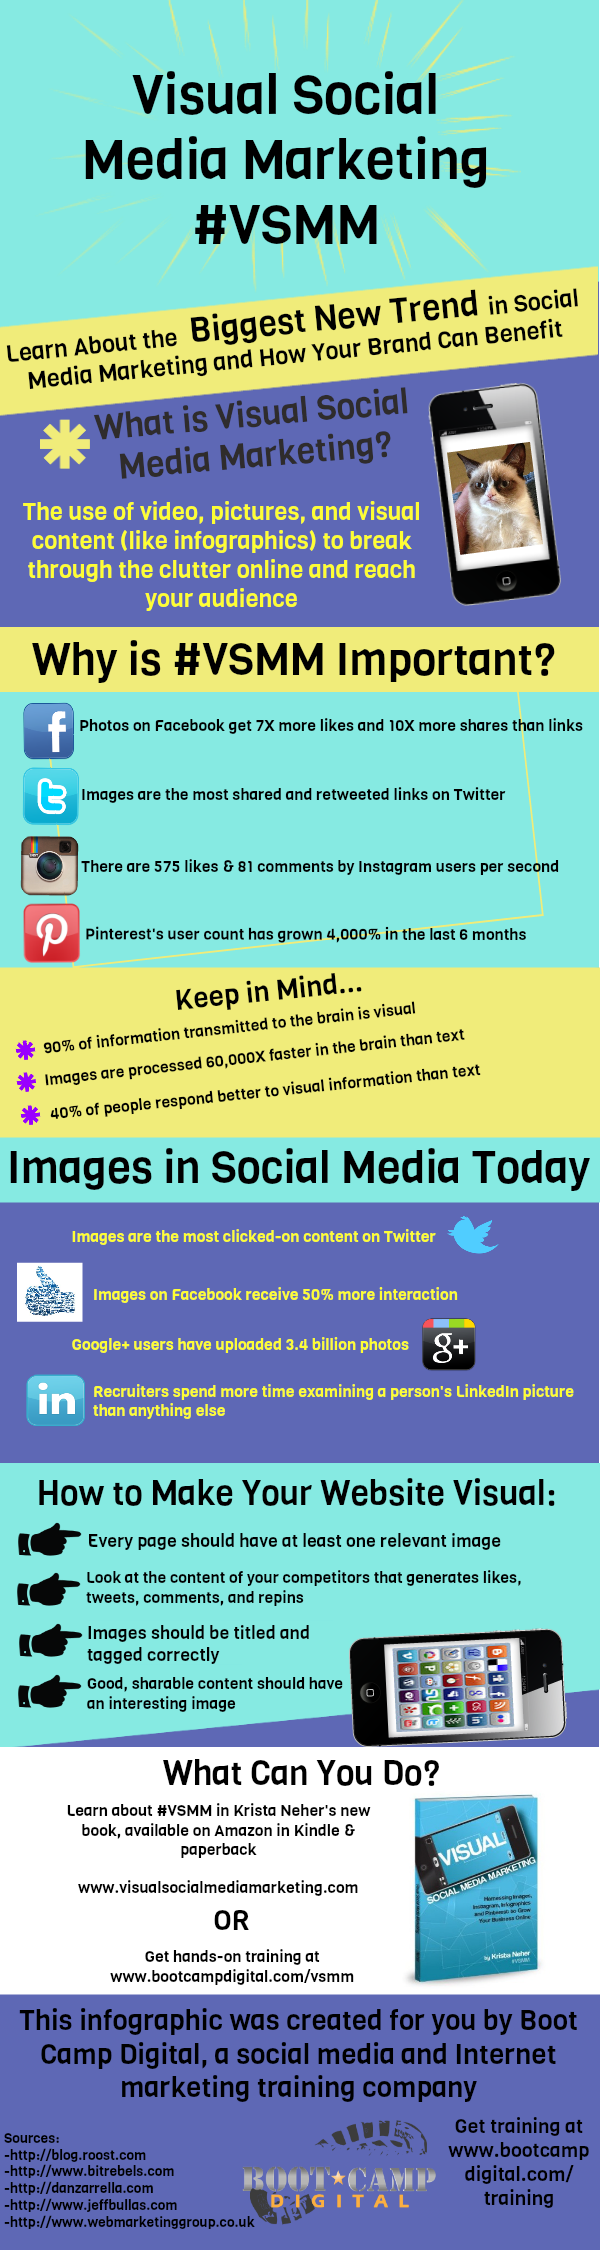 infographic-visual-social-media-marketing